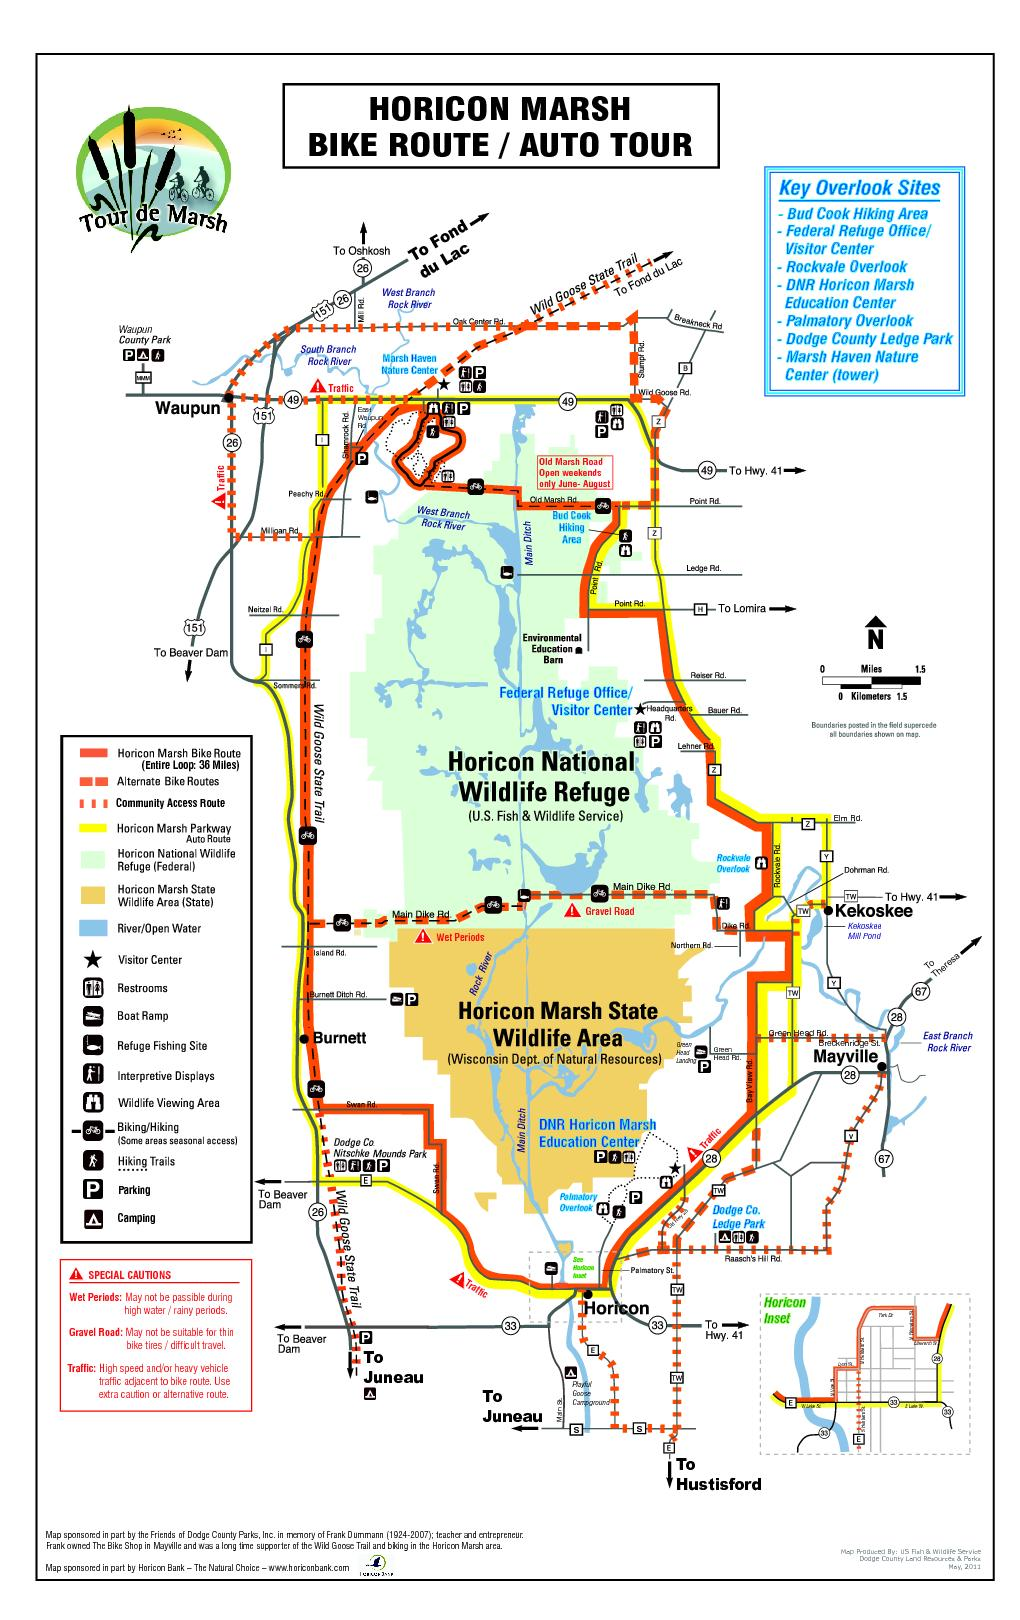 Map Produced By: US Fish & Wildlife Service